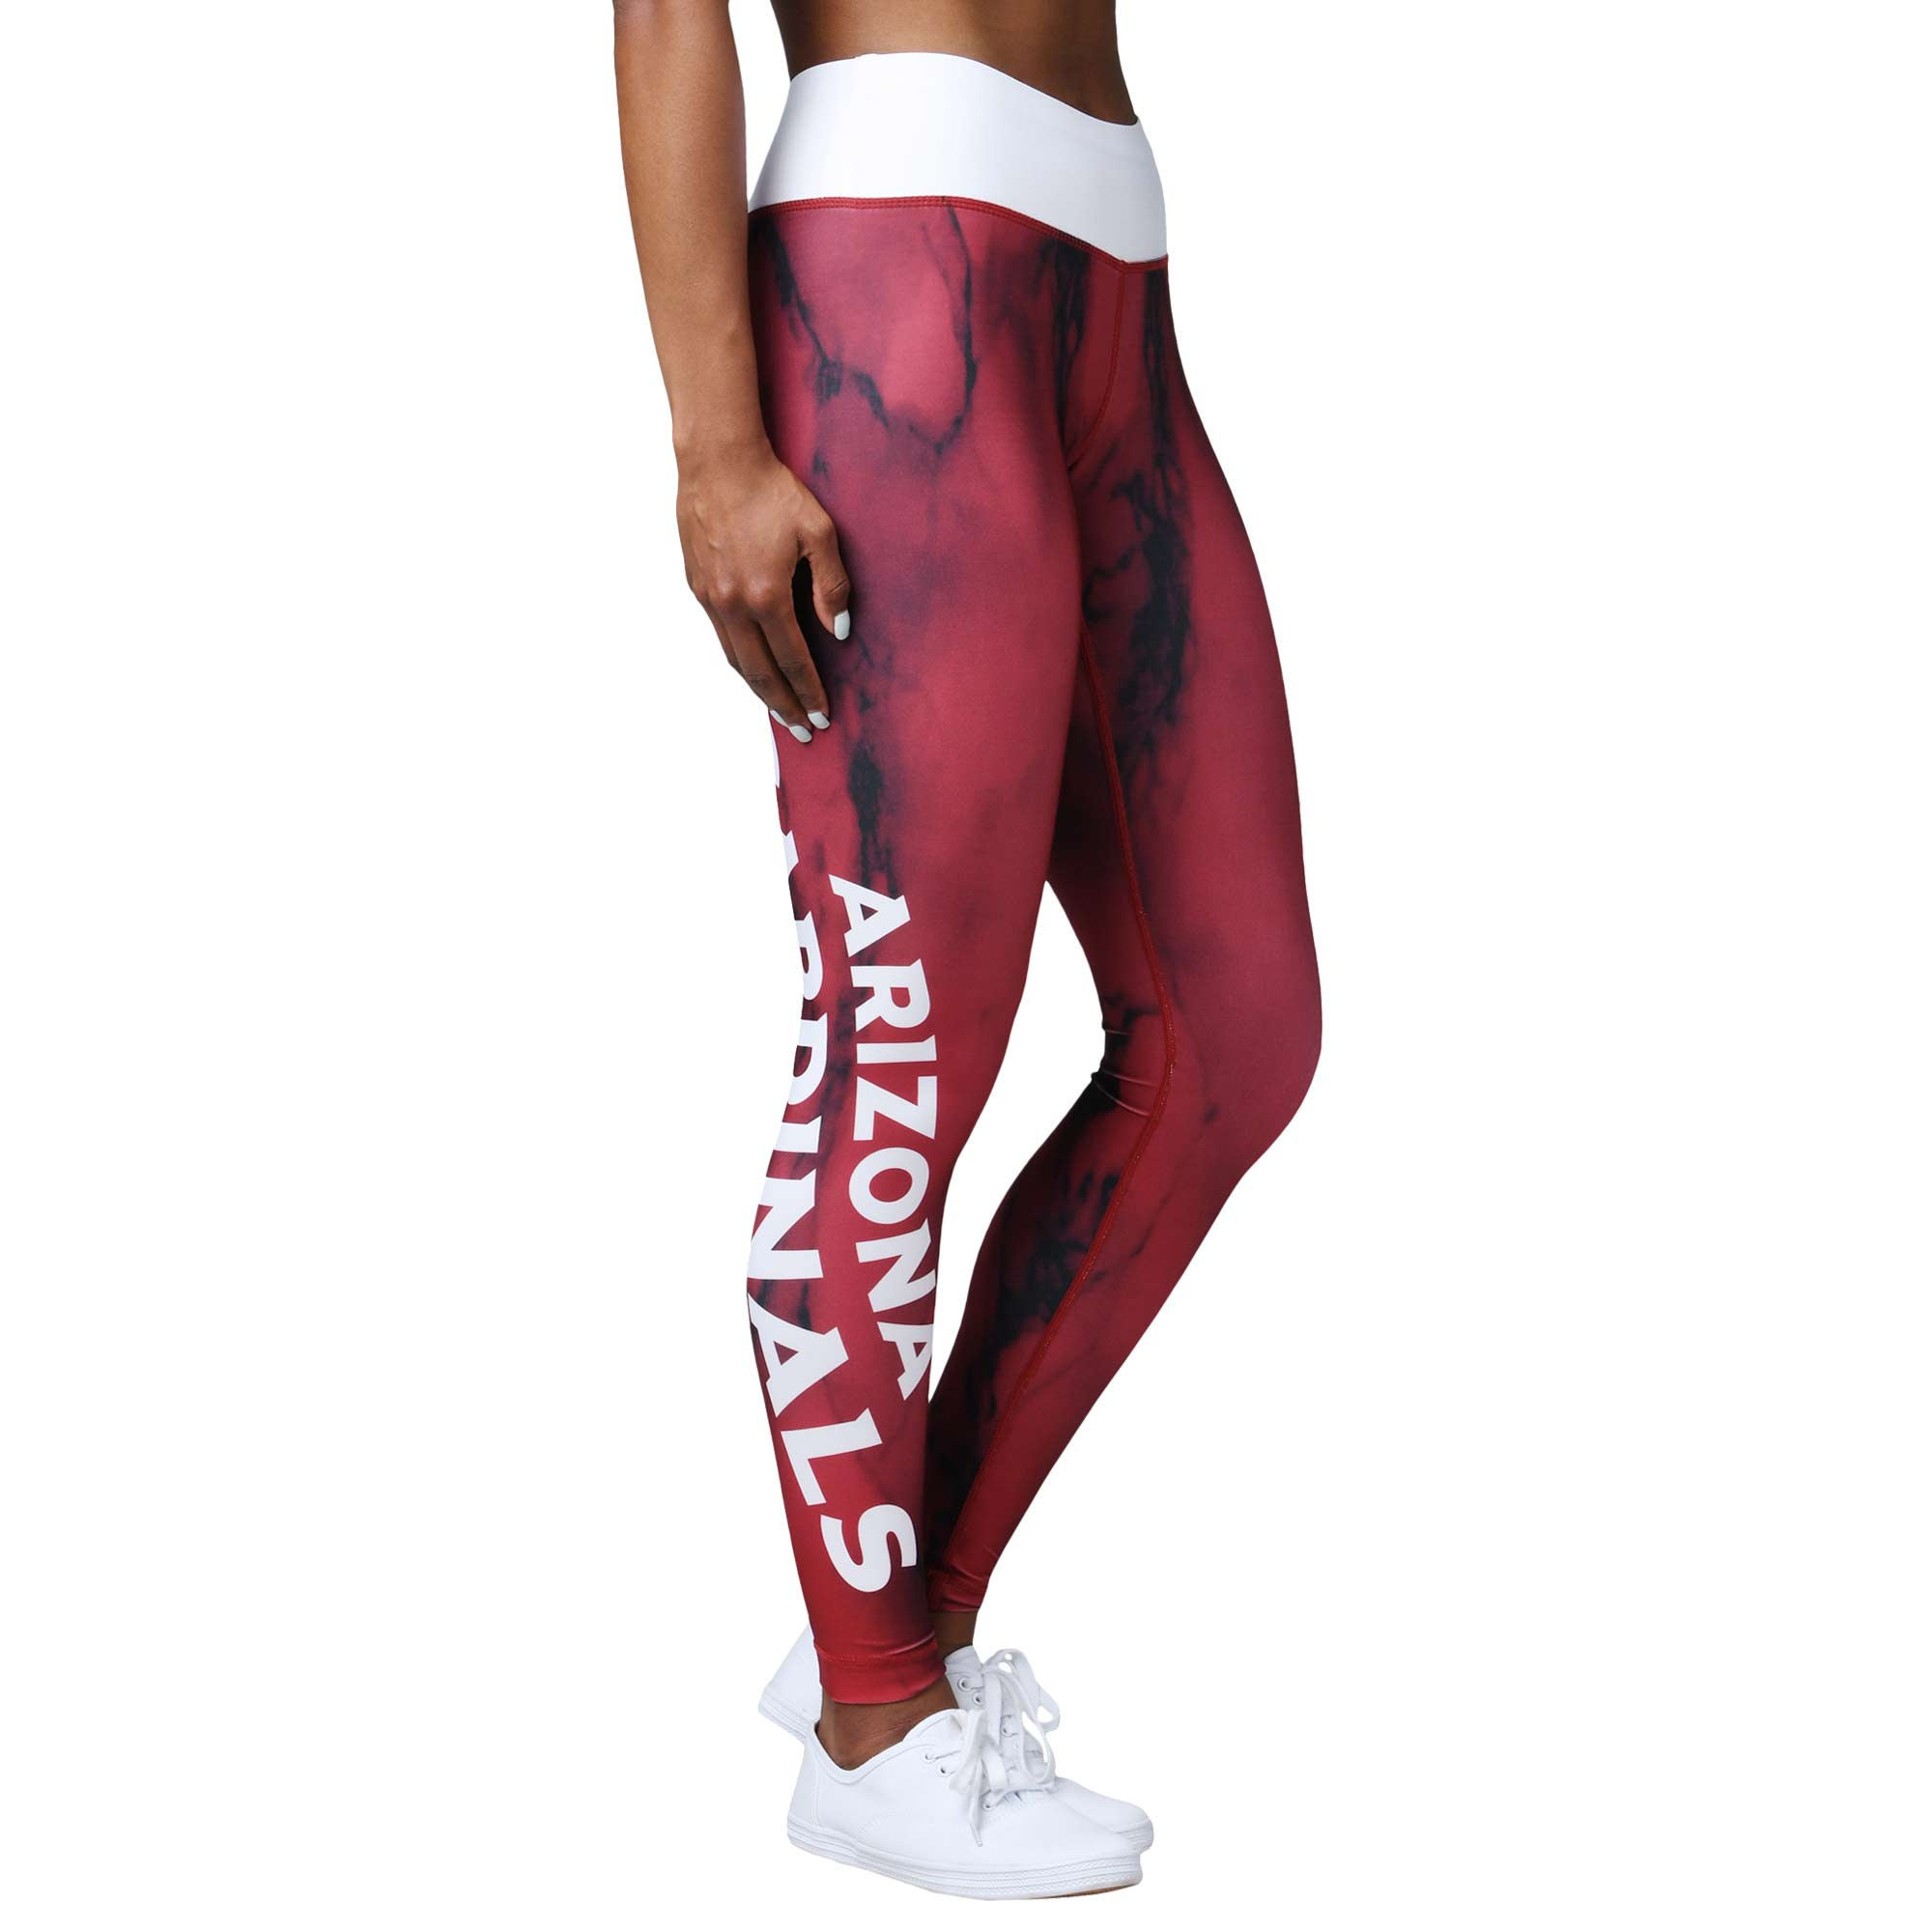 Arizona Cardinals Women's Team Color Marble Wordmark Leggings - Cardinal